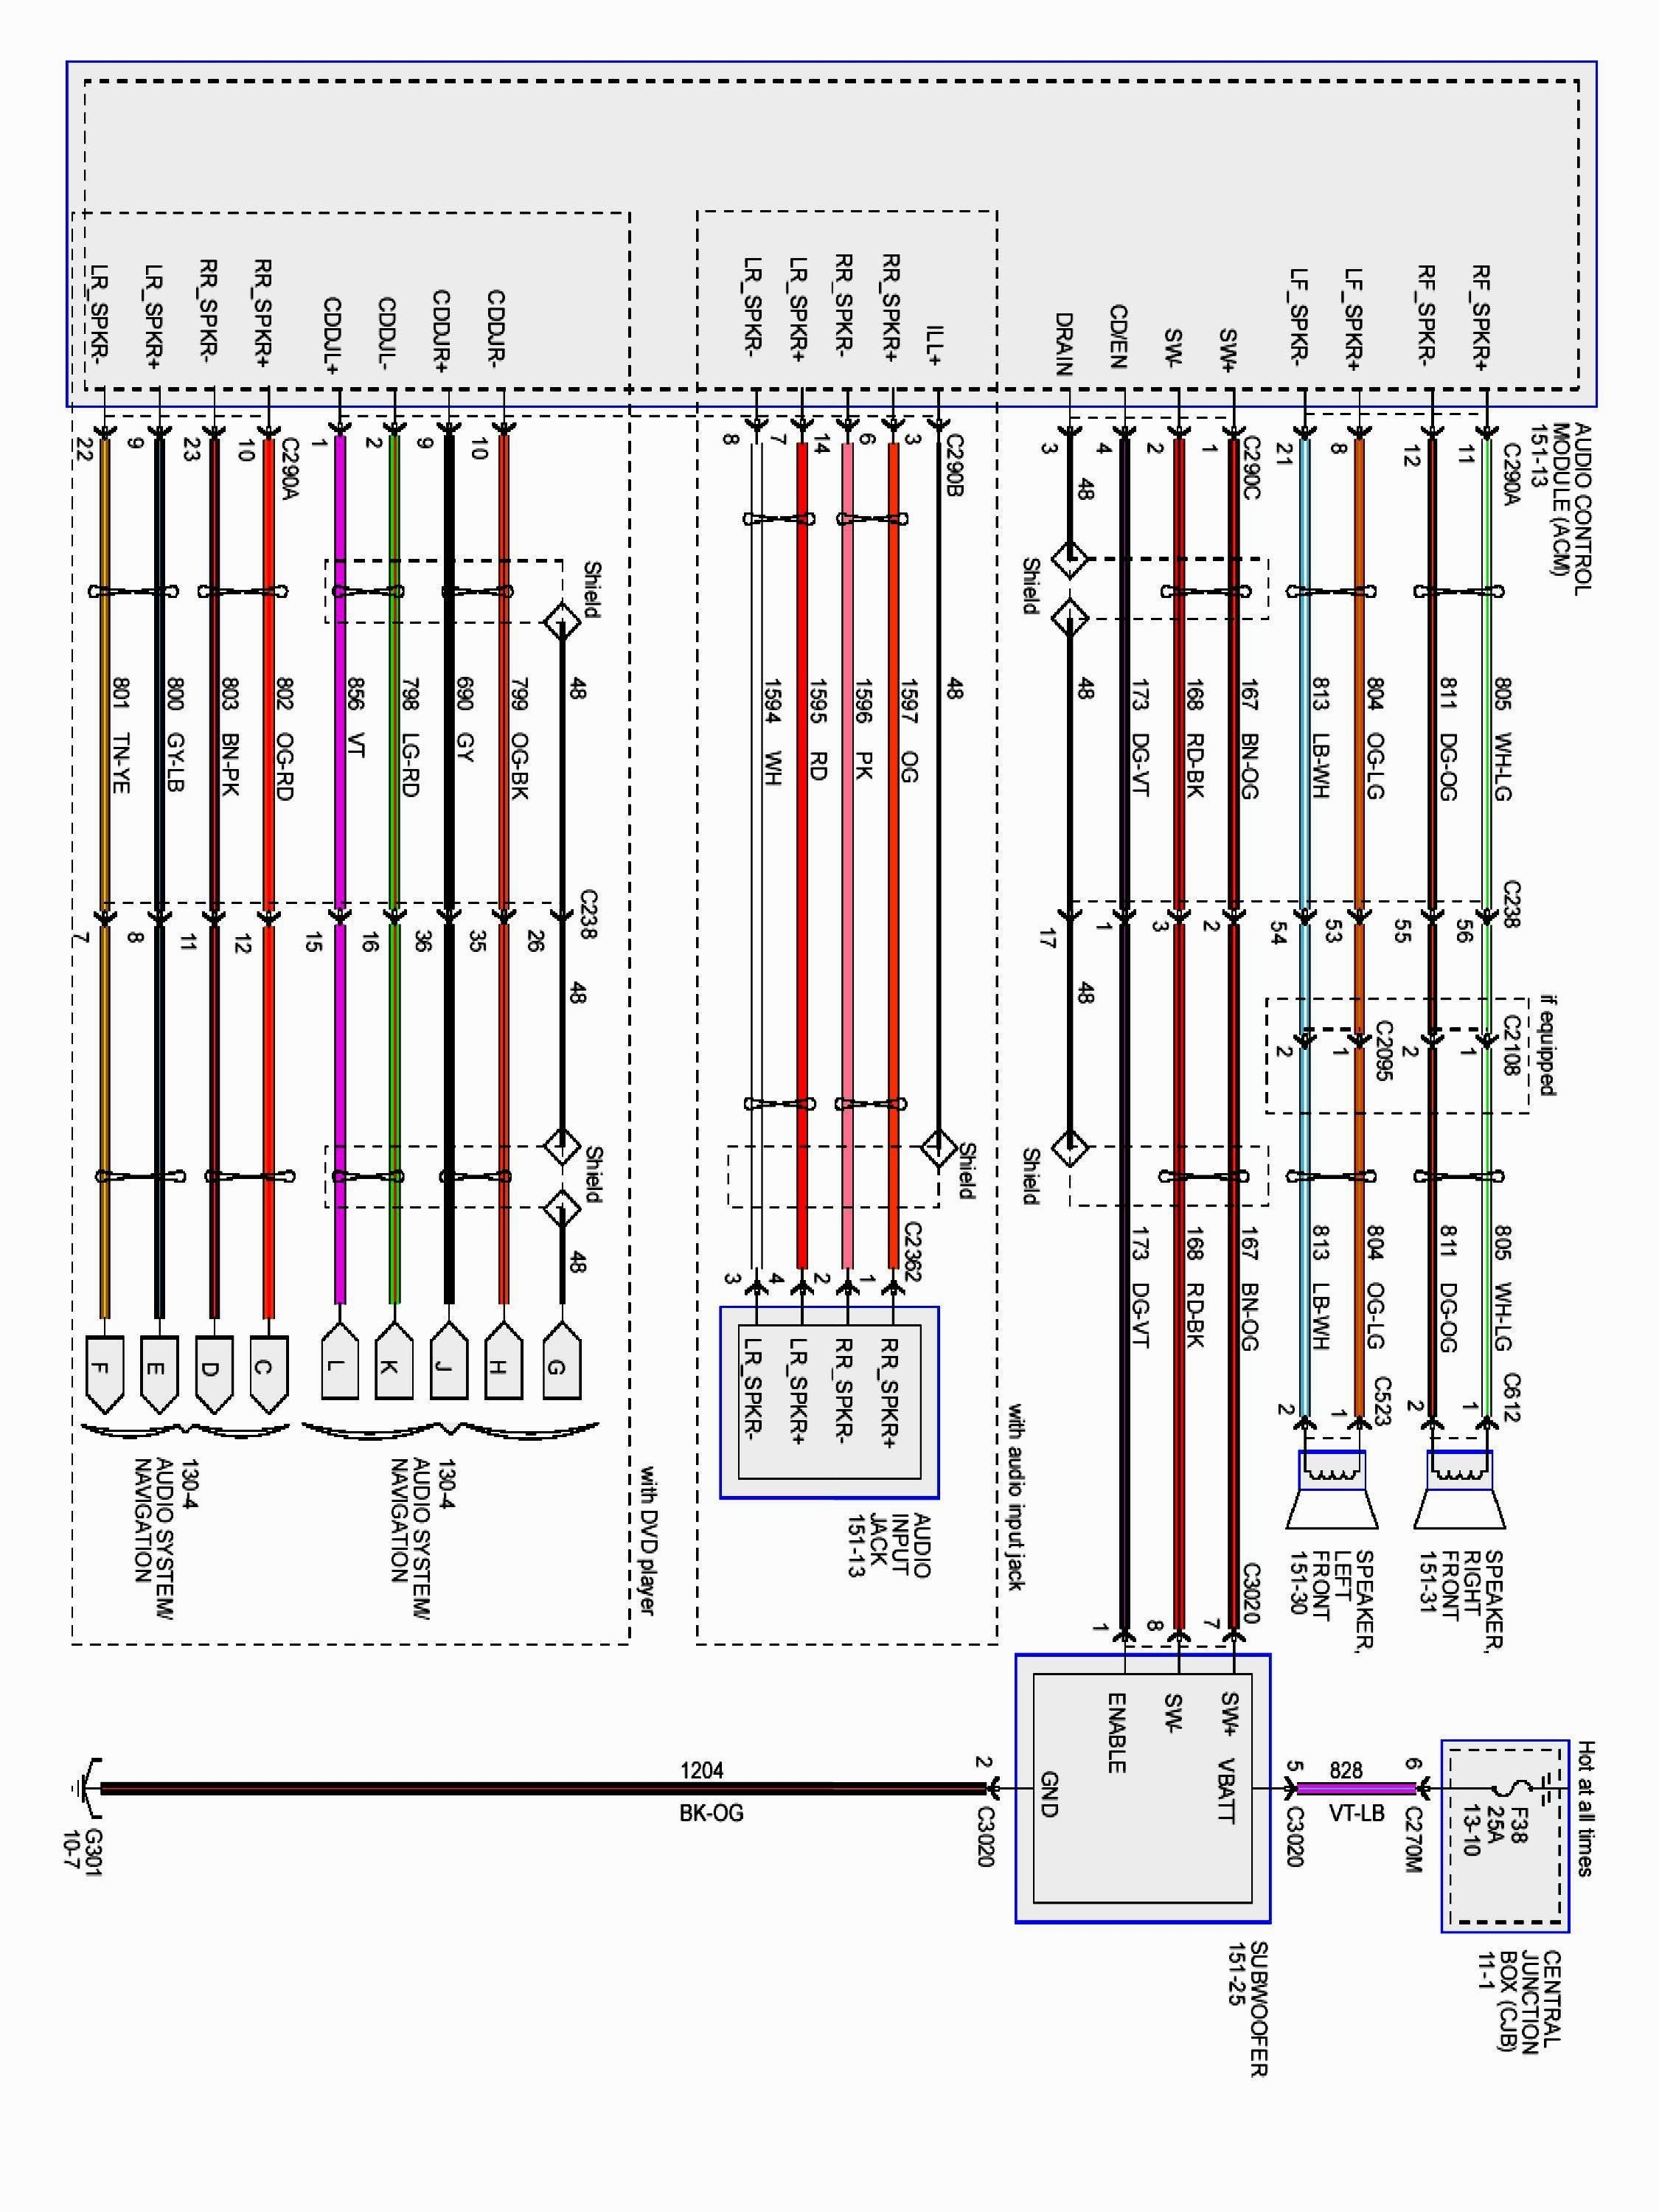 Whole House Audio Wiring Diagram Amplifier Wiring Diagrams Car Audio Diagram and Speakers Fancy sound Of Whole House Audio Wiring Diagram